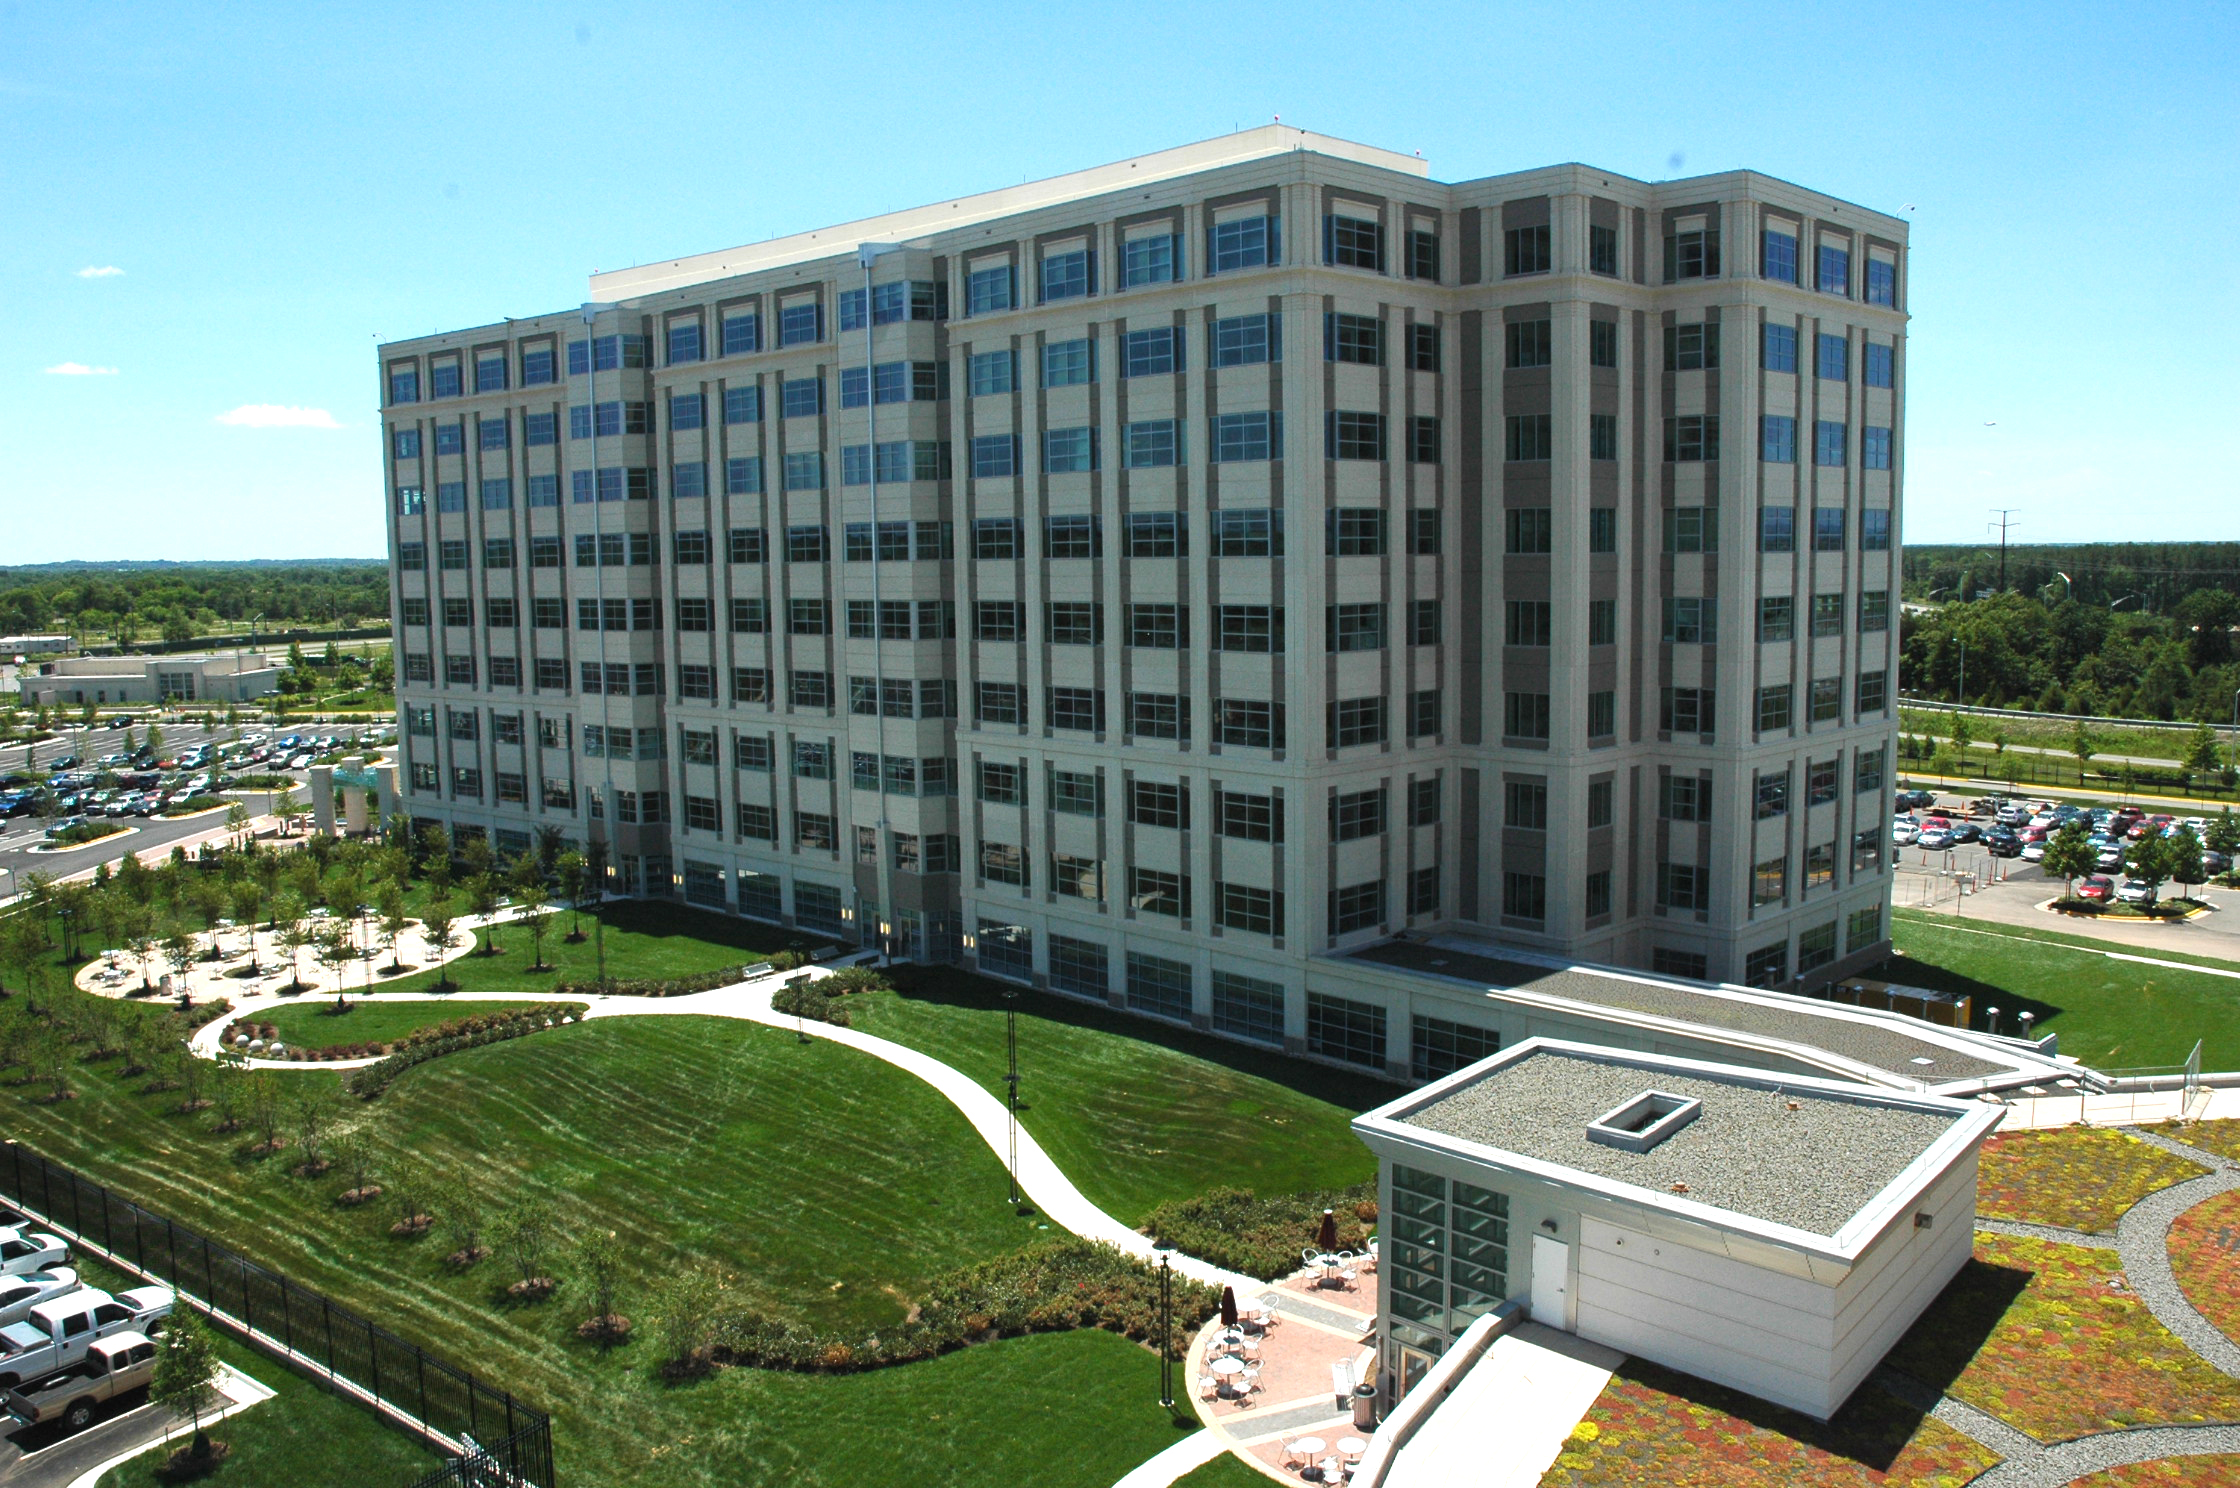 Dulles Discovery    Description: Secure Government Office Park.  Client(s): The Peterson Companies  Location: Fairfax County, Virginia  Size: 22 acres